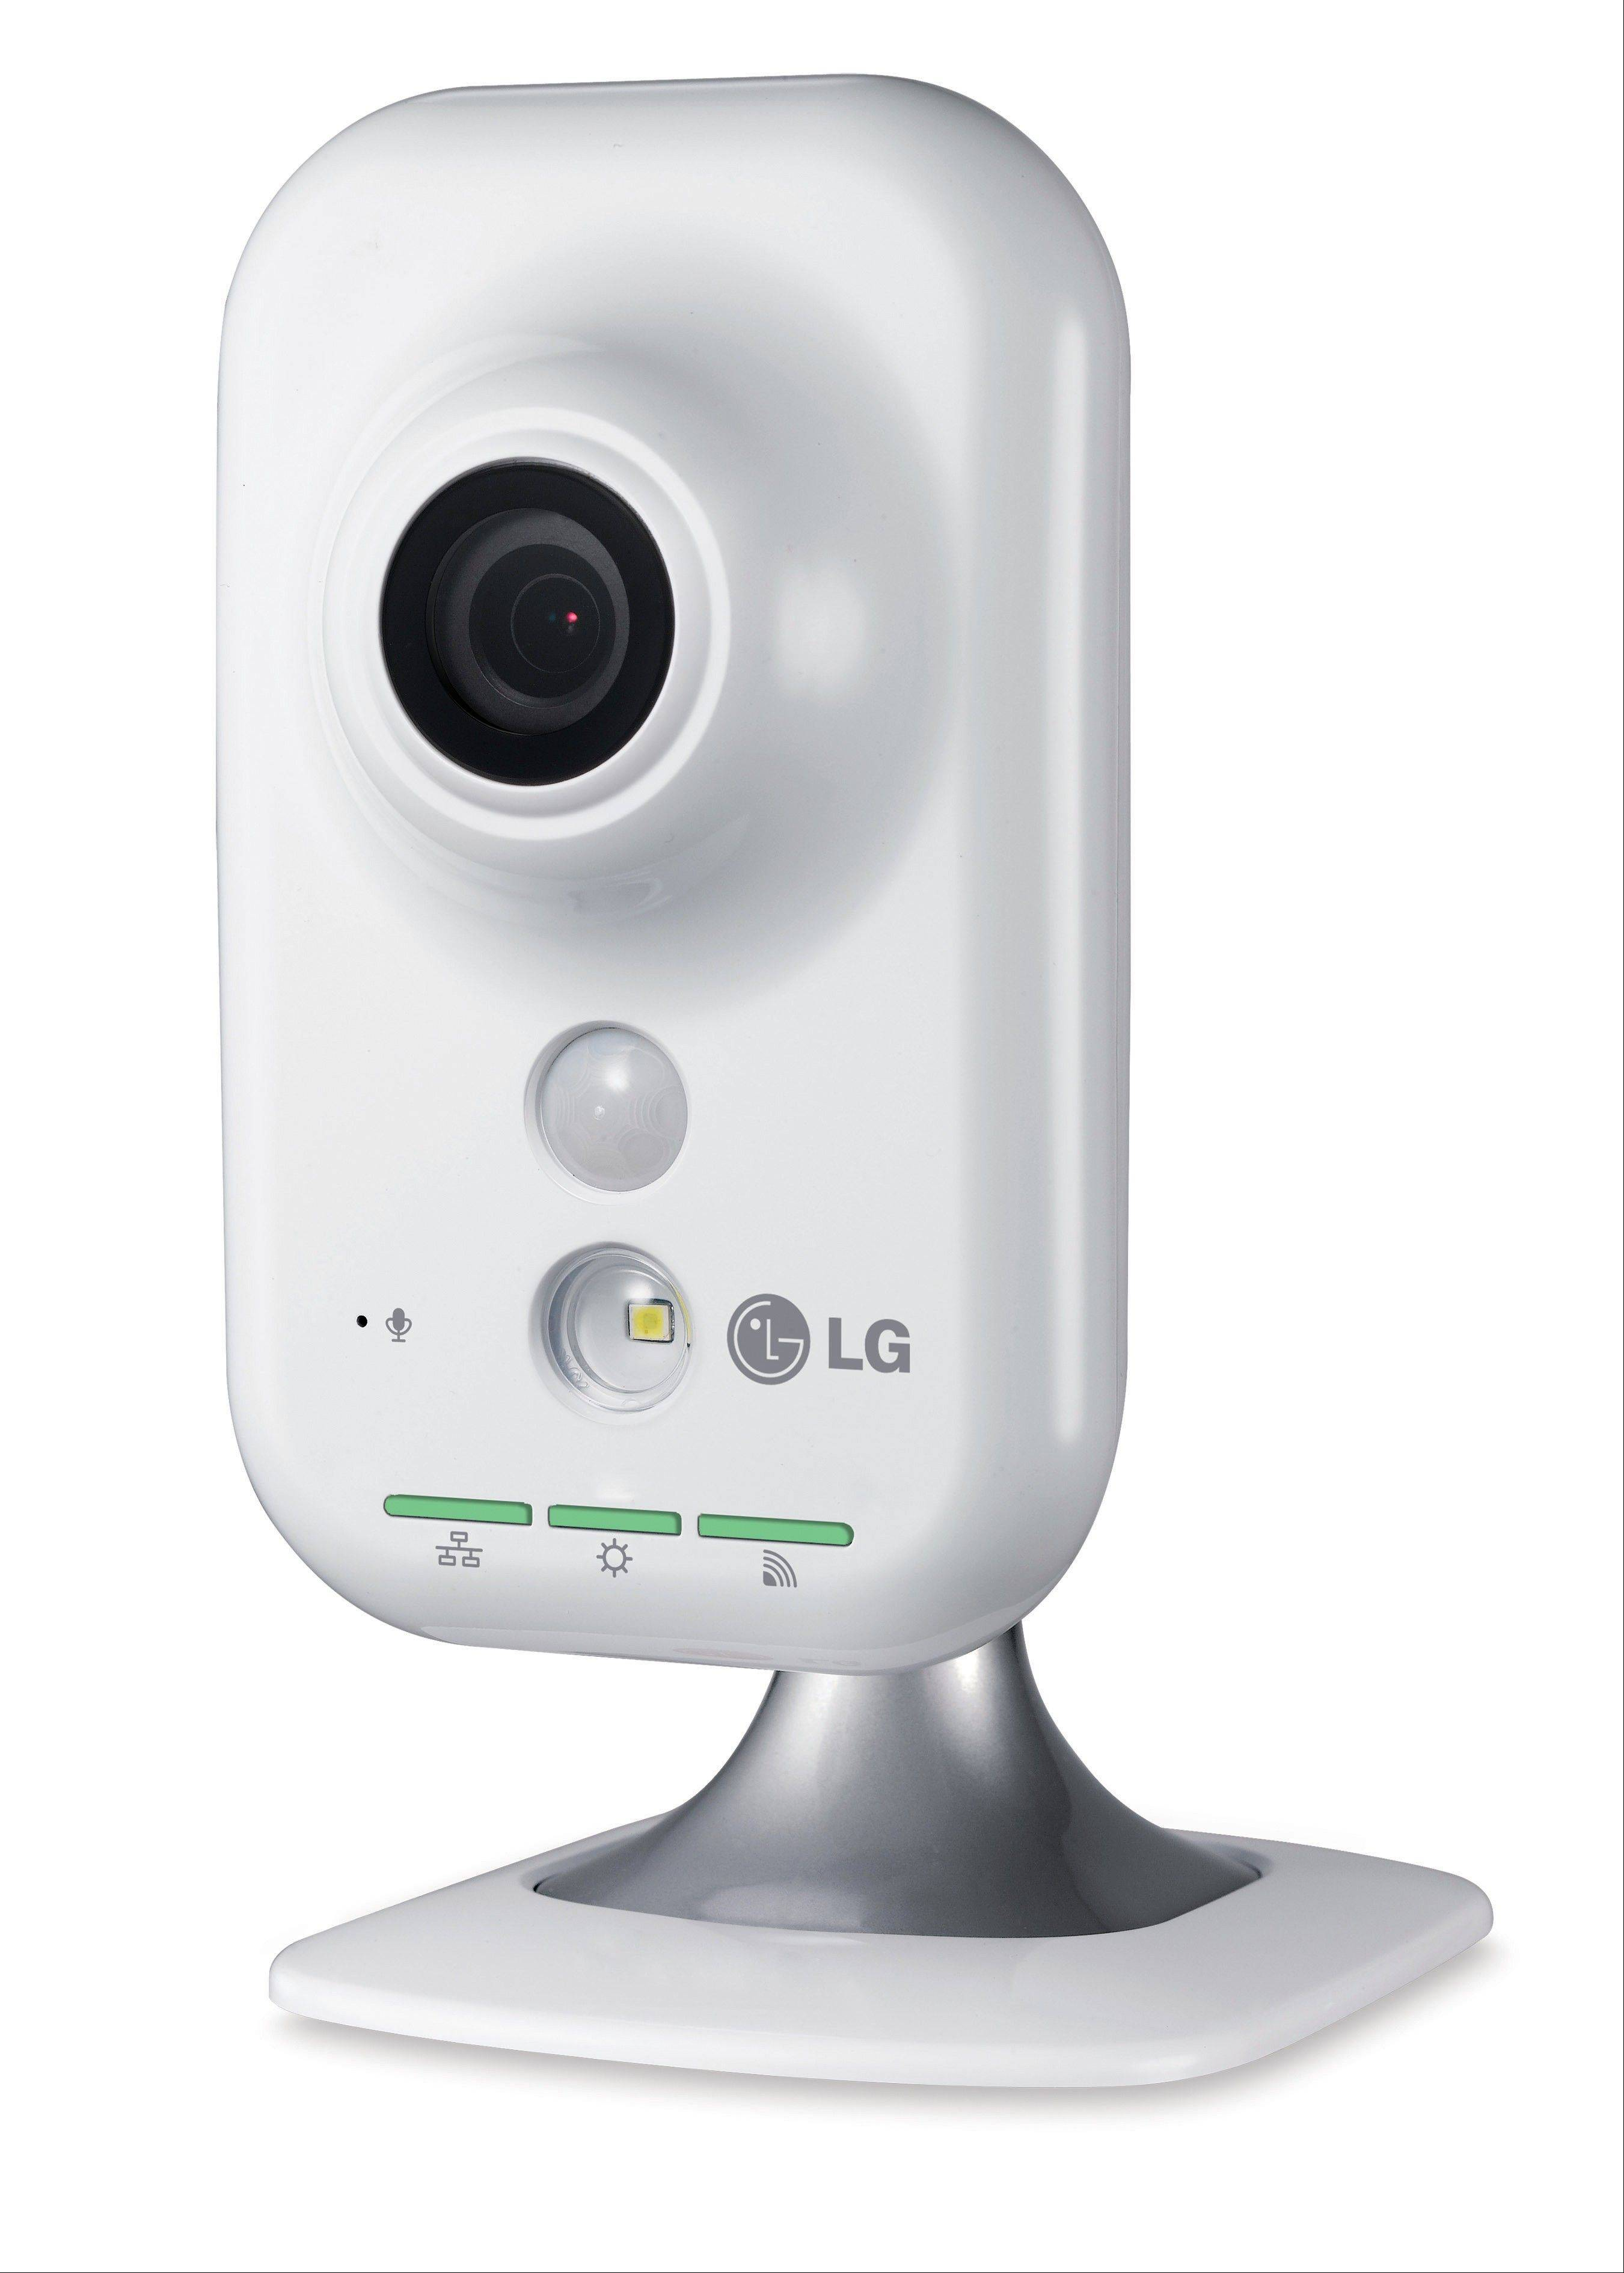 The new LG Wireless HD Network IP Cube Camera (model LW130W) offers high-definition video. It also has a free Android or iPhone application for remote viewing and monitoring from anywhere with smartphone connectivity.